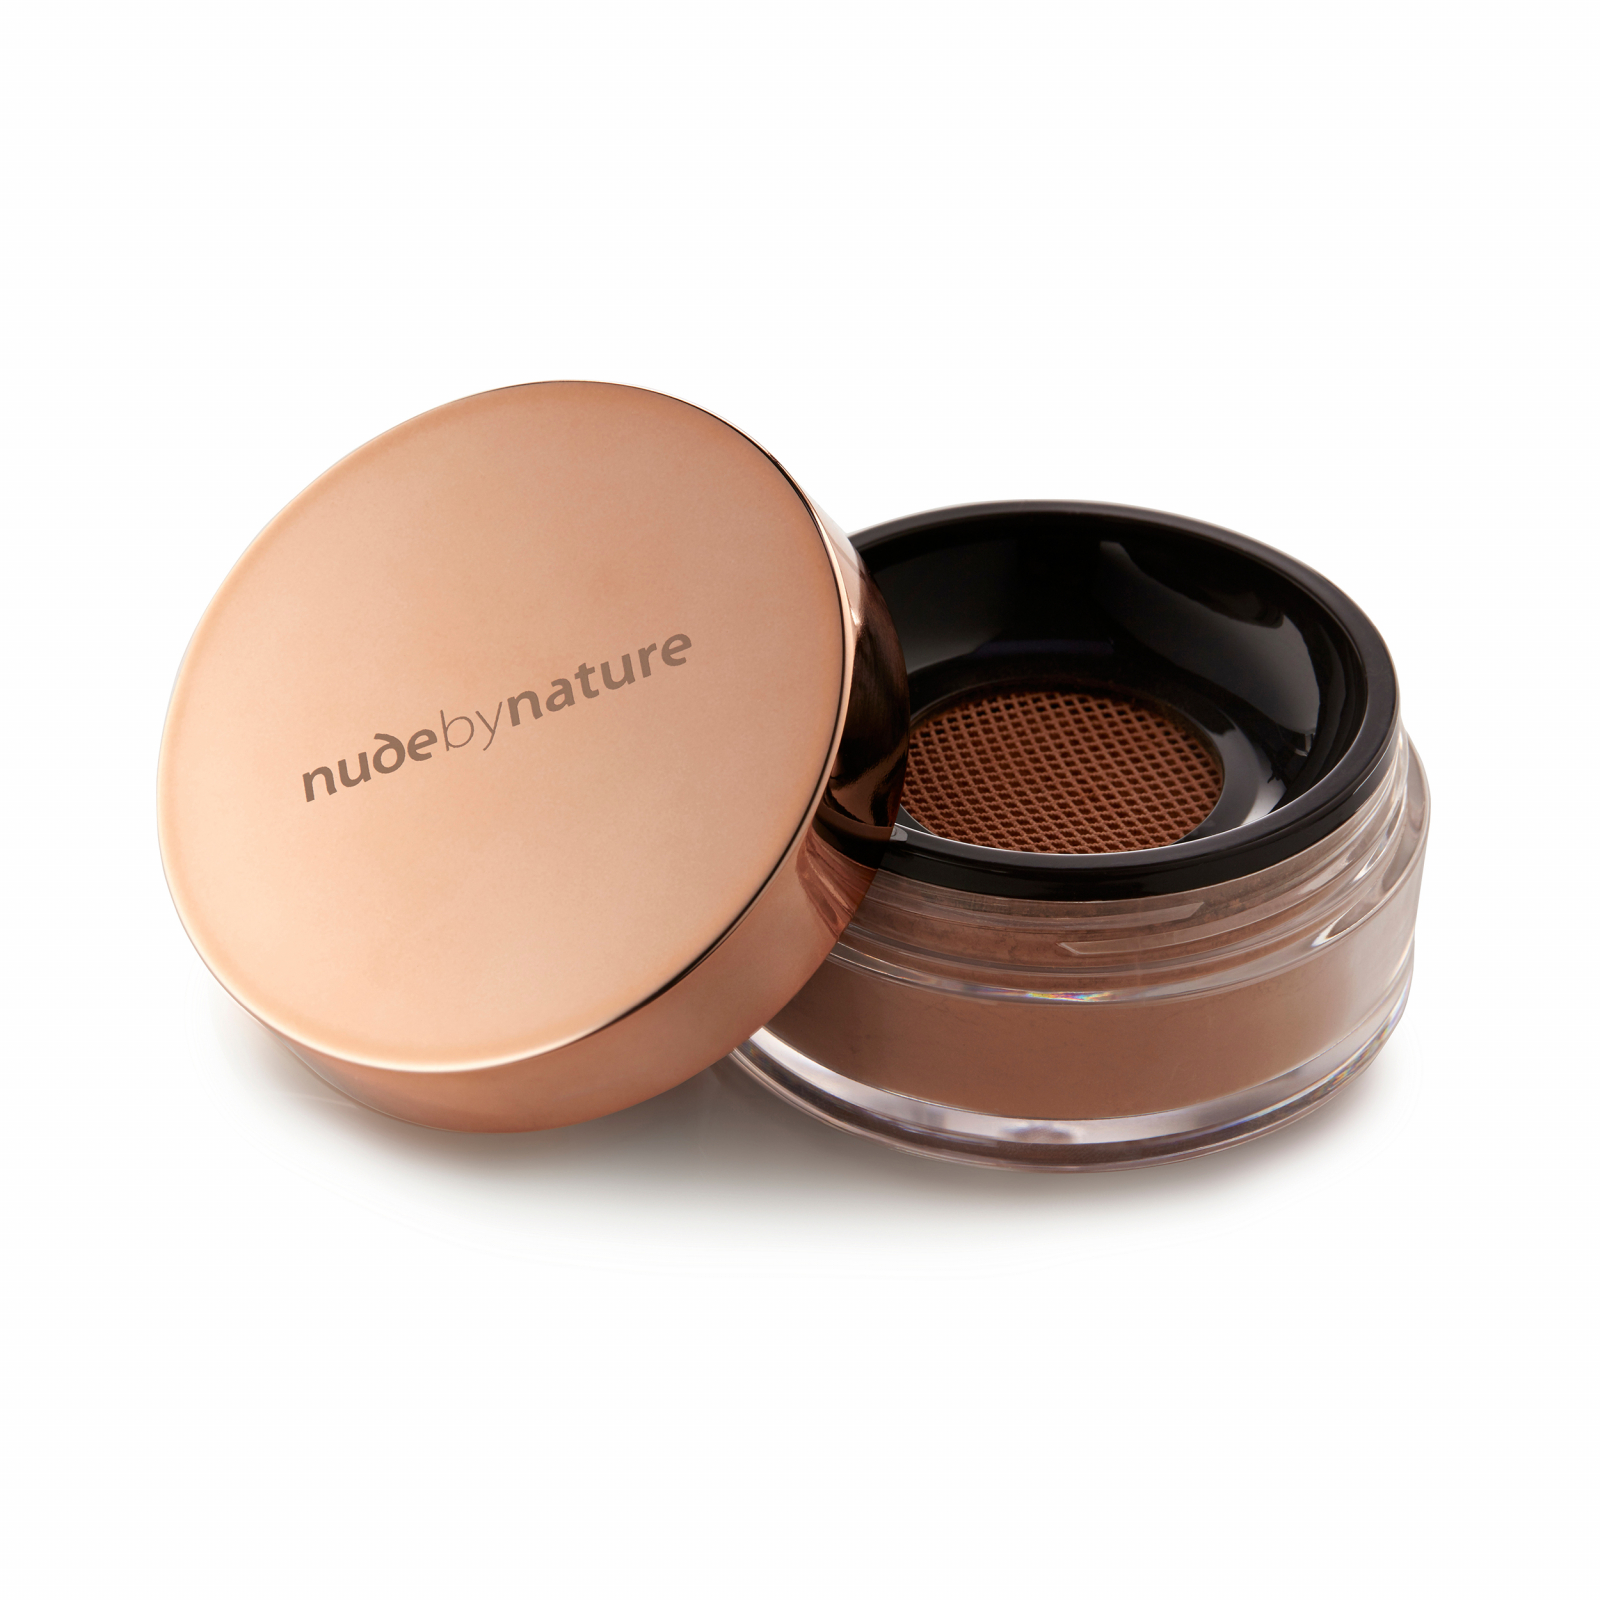 Nude by Nature Mineral Bronzer, 99 zł